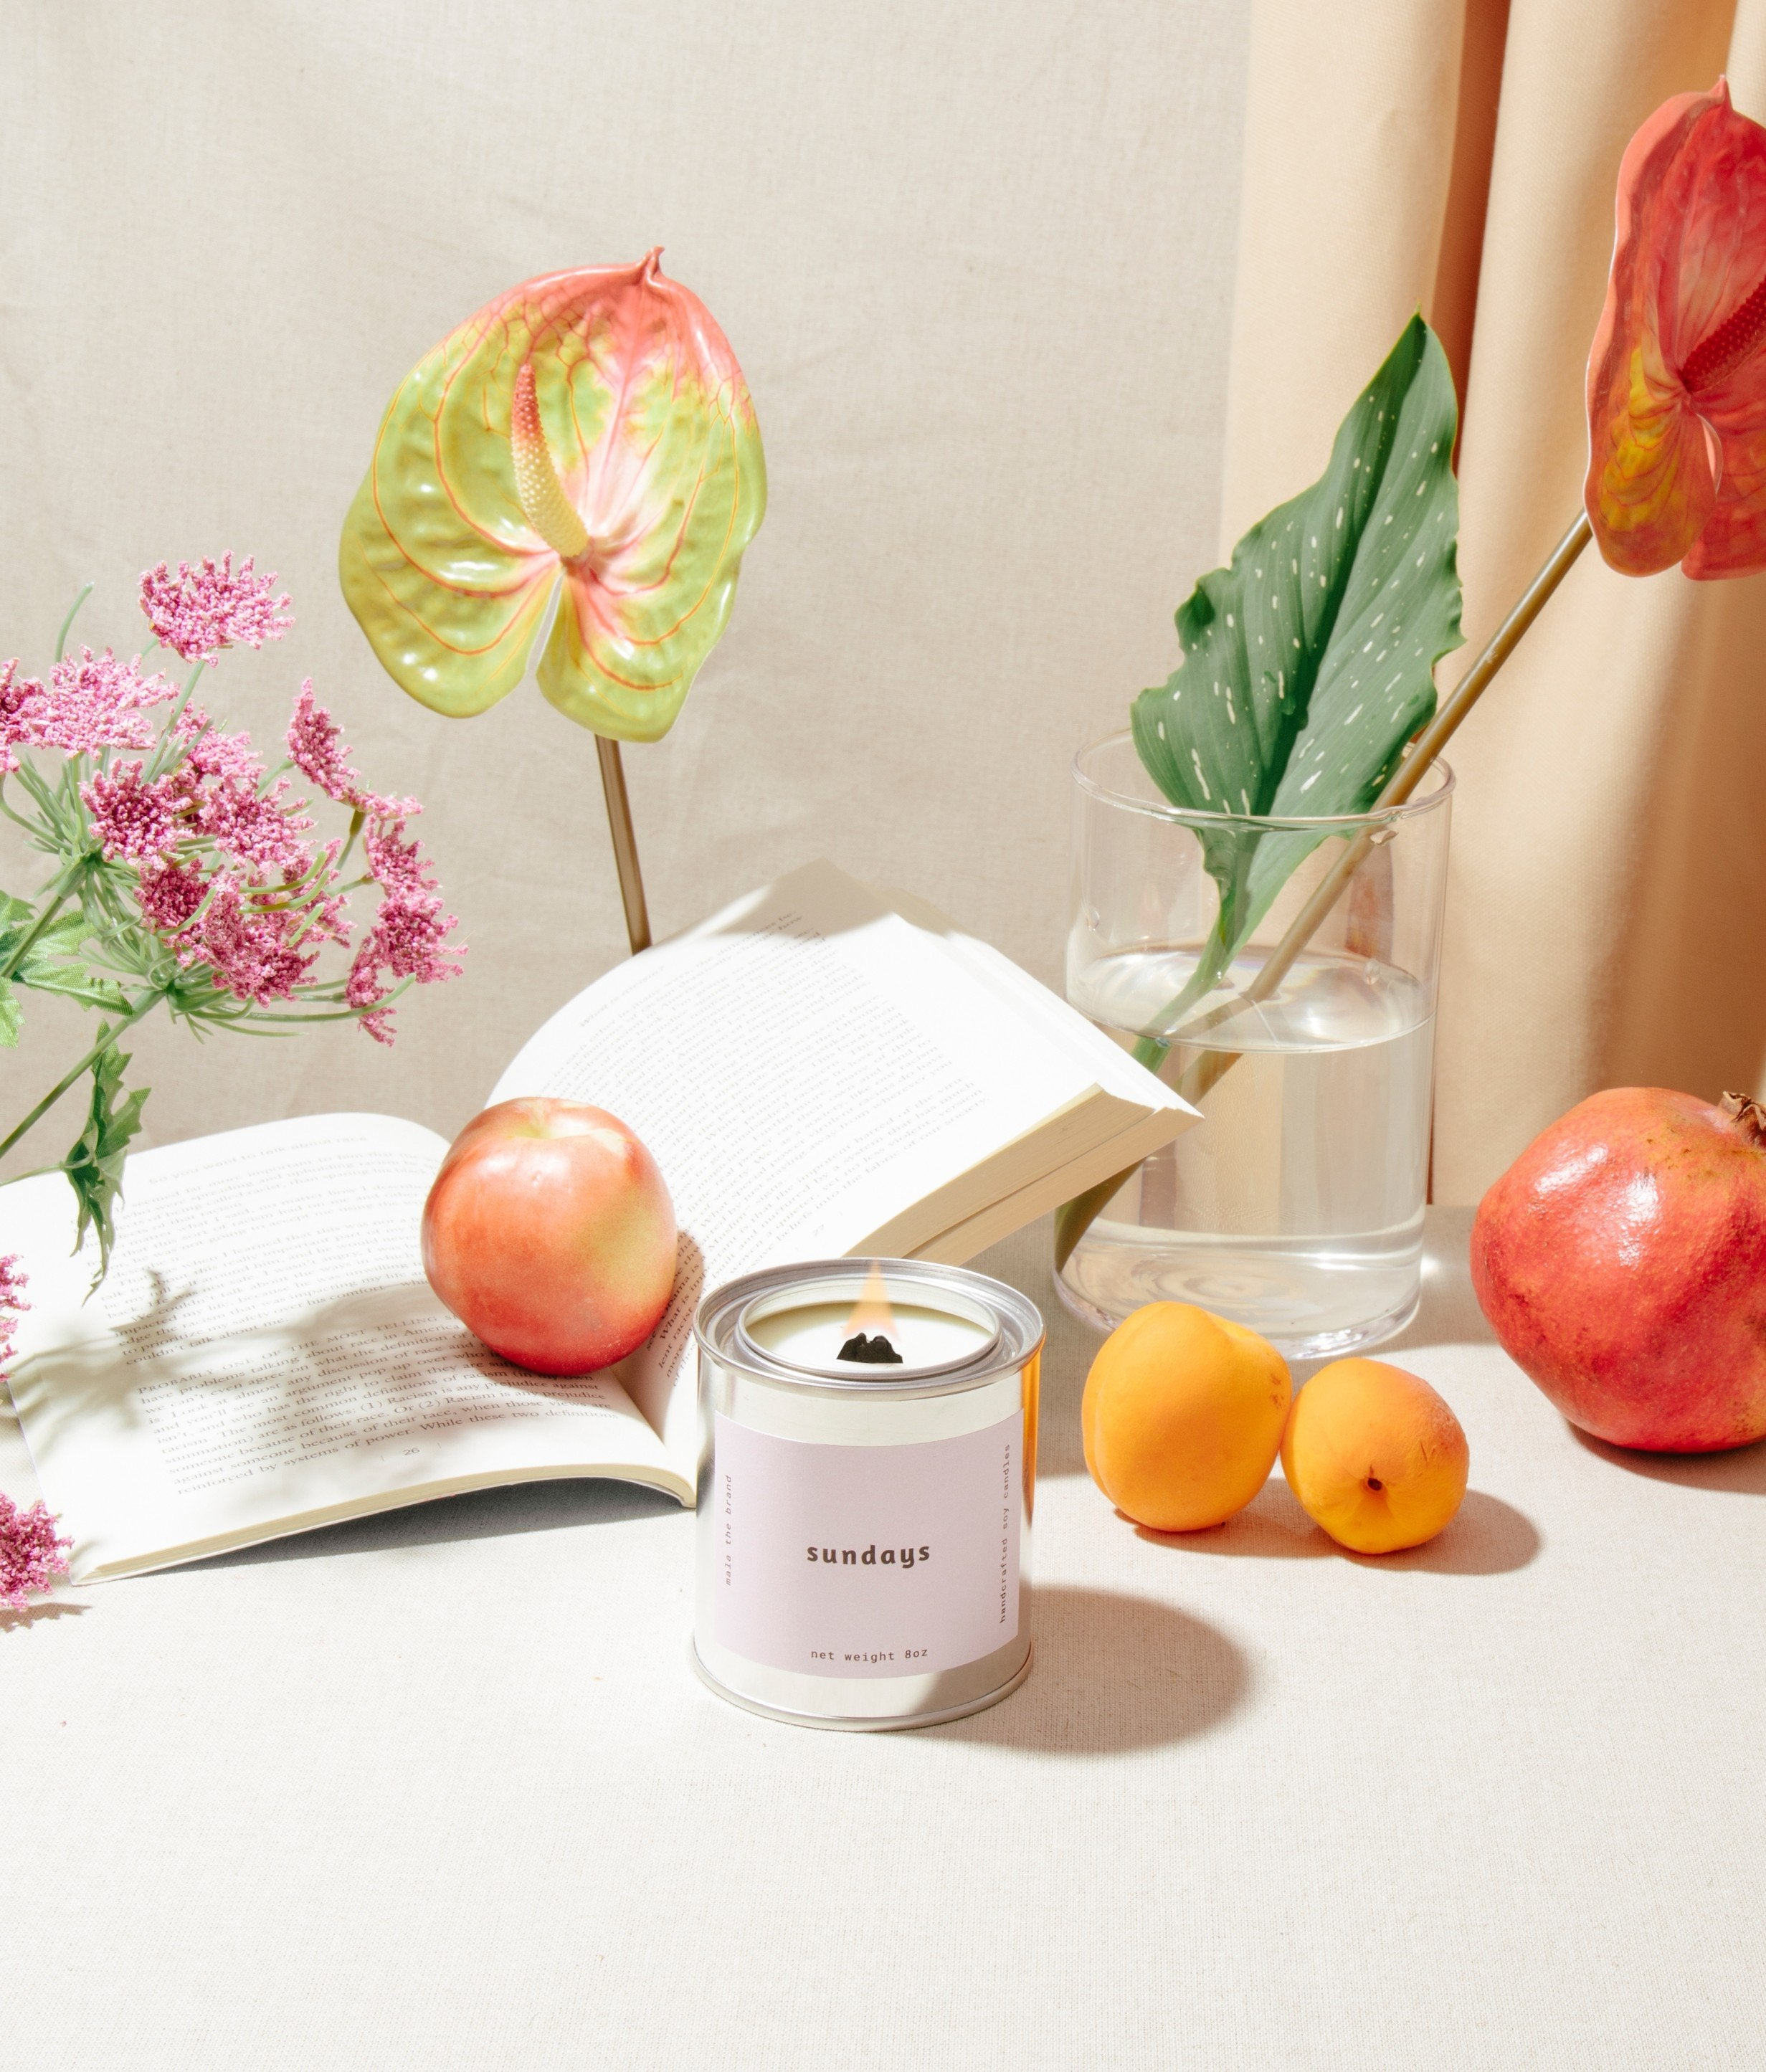 Mala The Brand - Sundays Candle makes the perfect housewarming gift for friends or family!